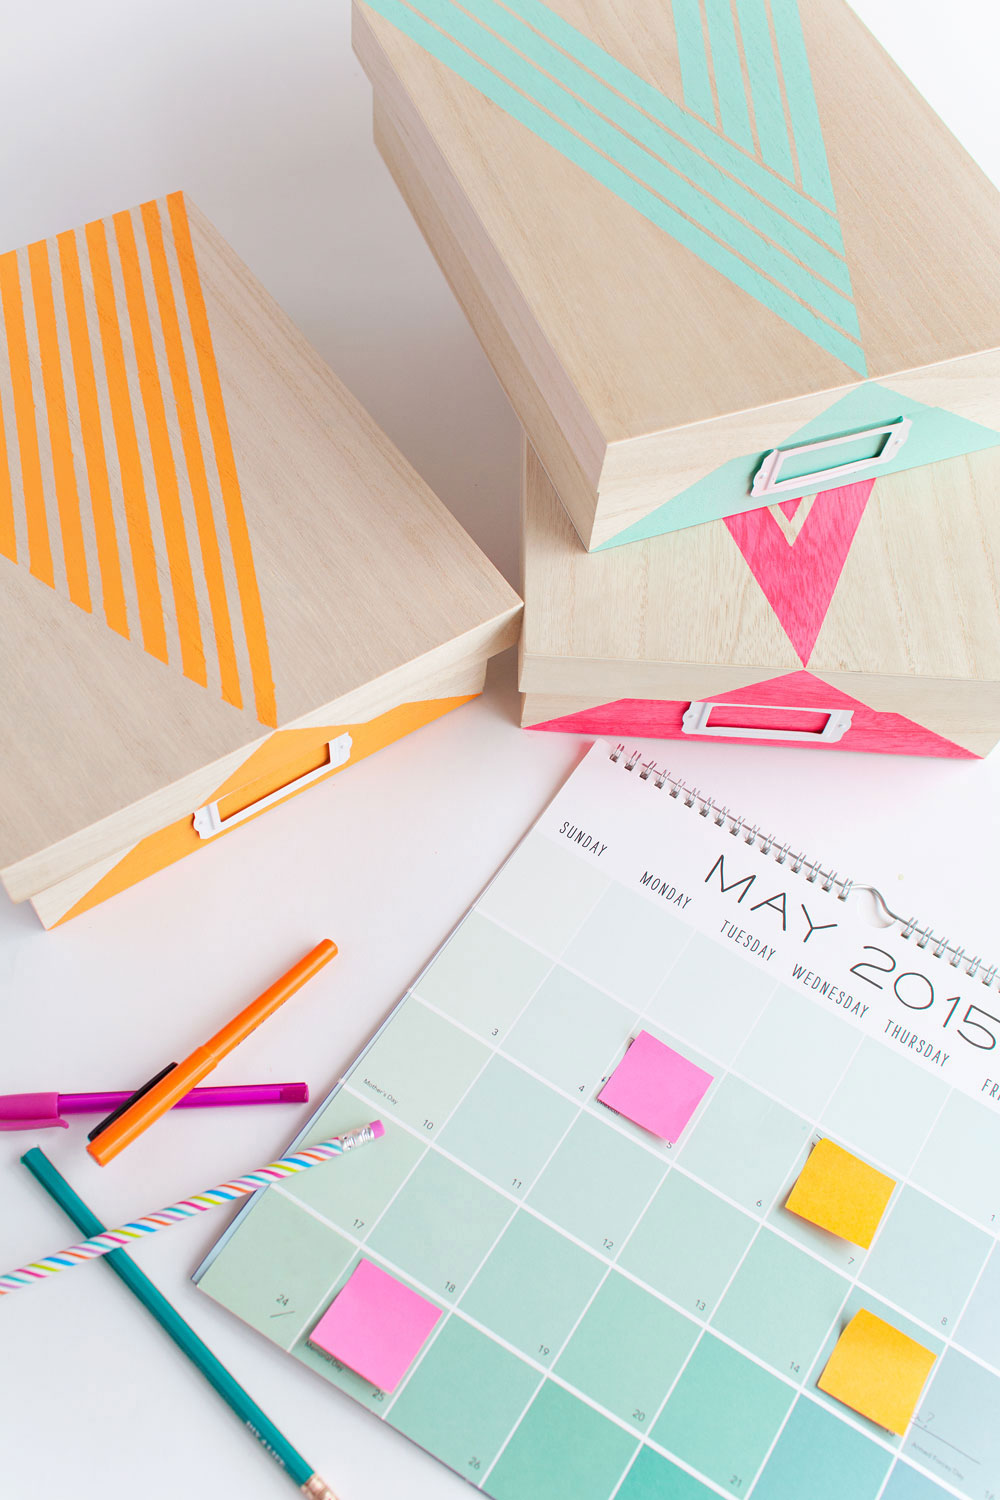 9 Clever DIY Ways to Organize Your Desk